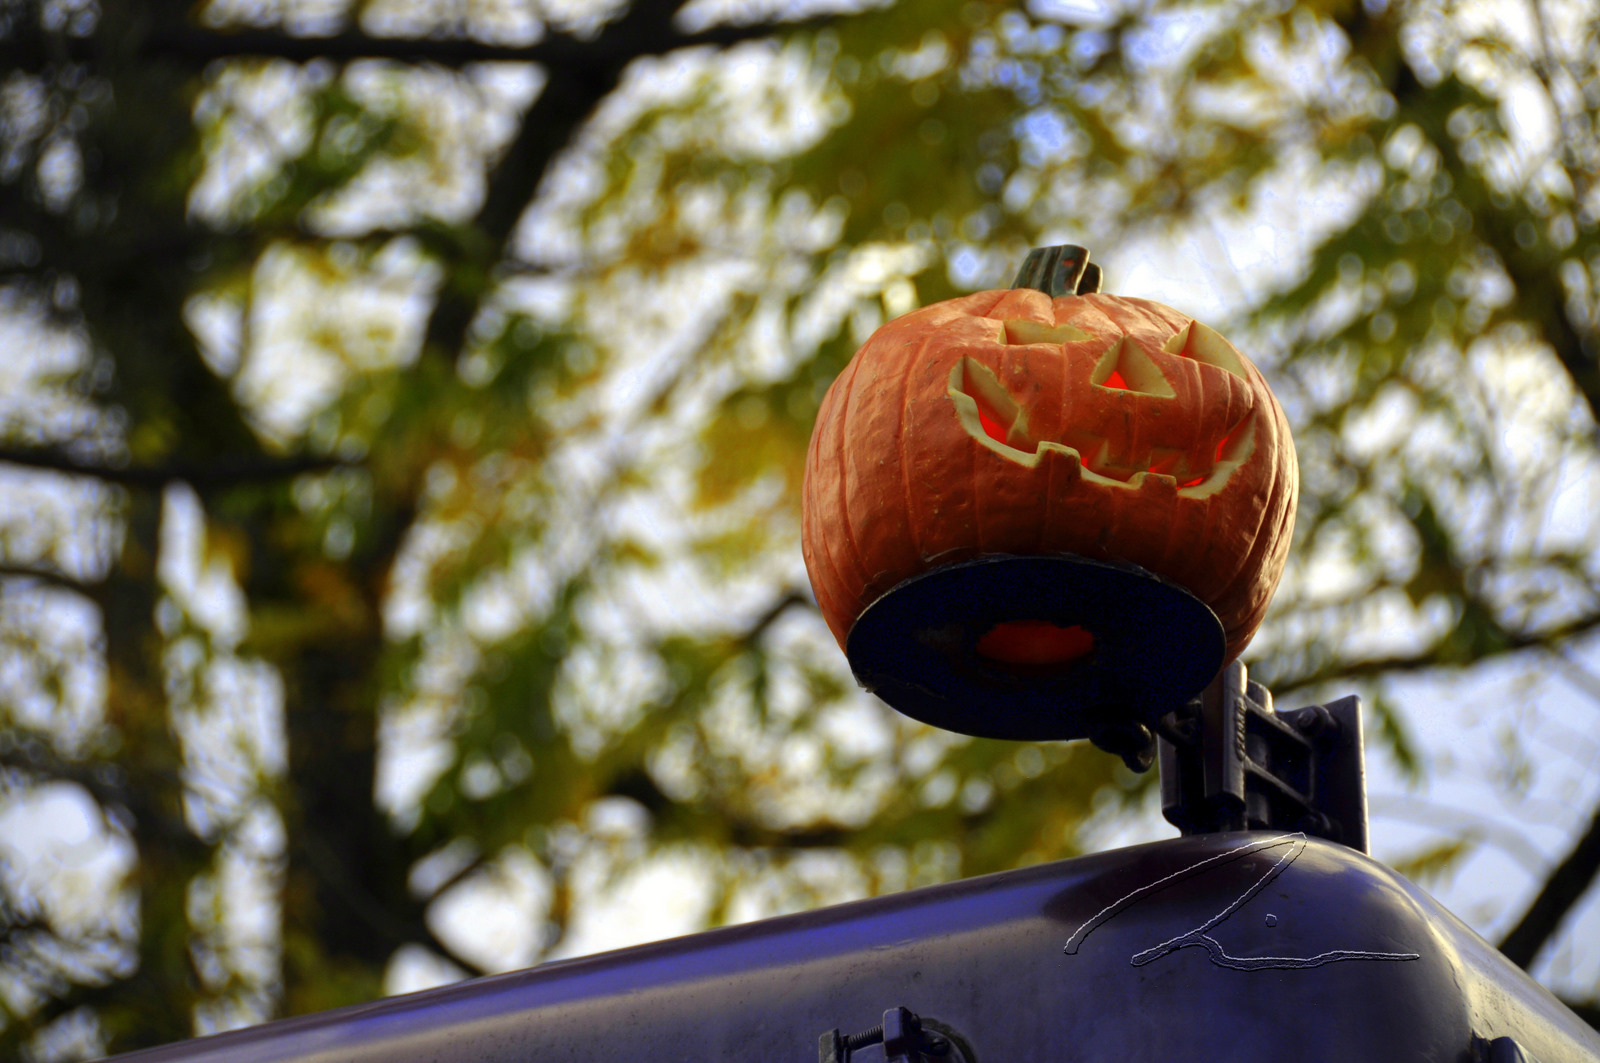 This is a photo of a pumpkin on top of a train.